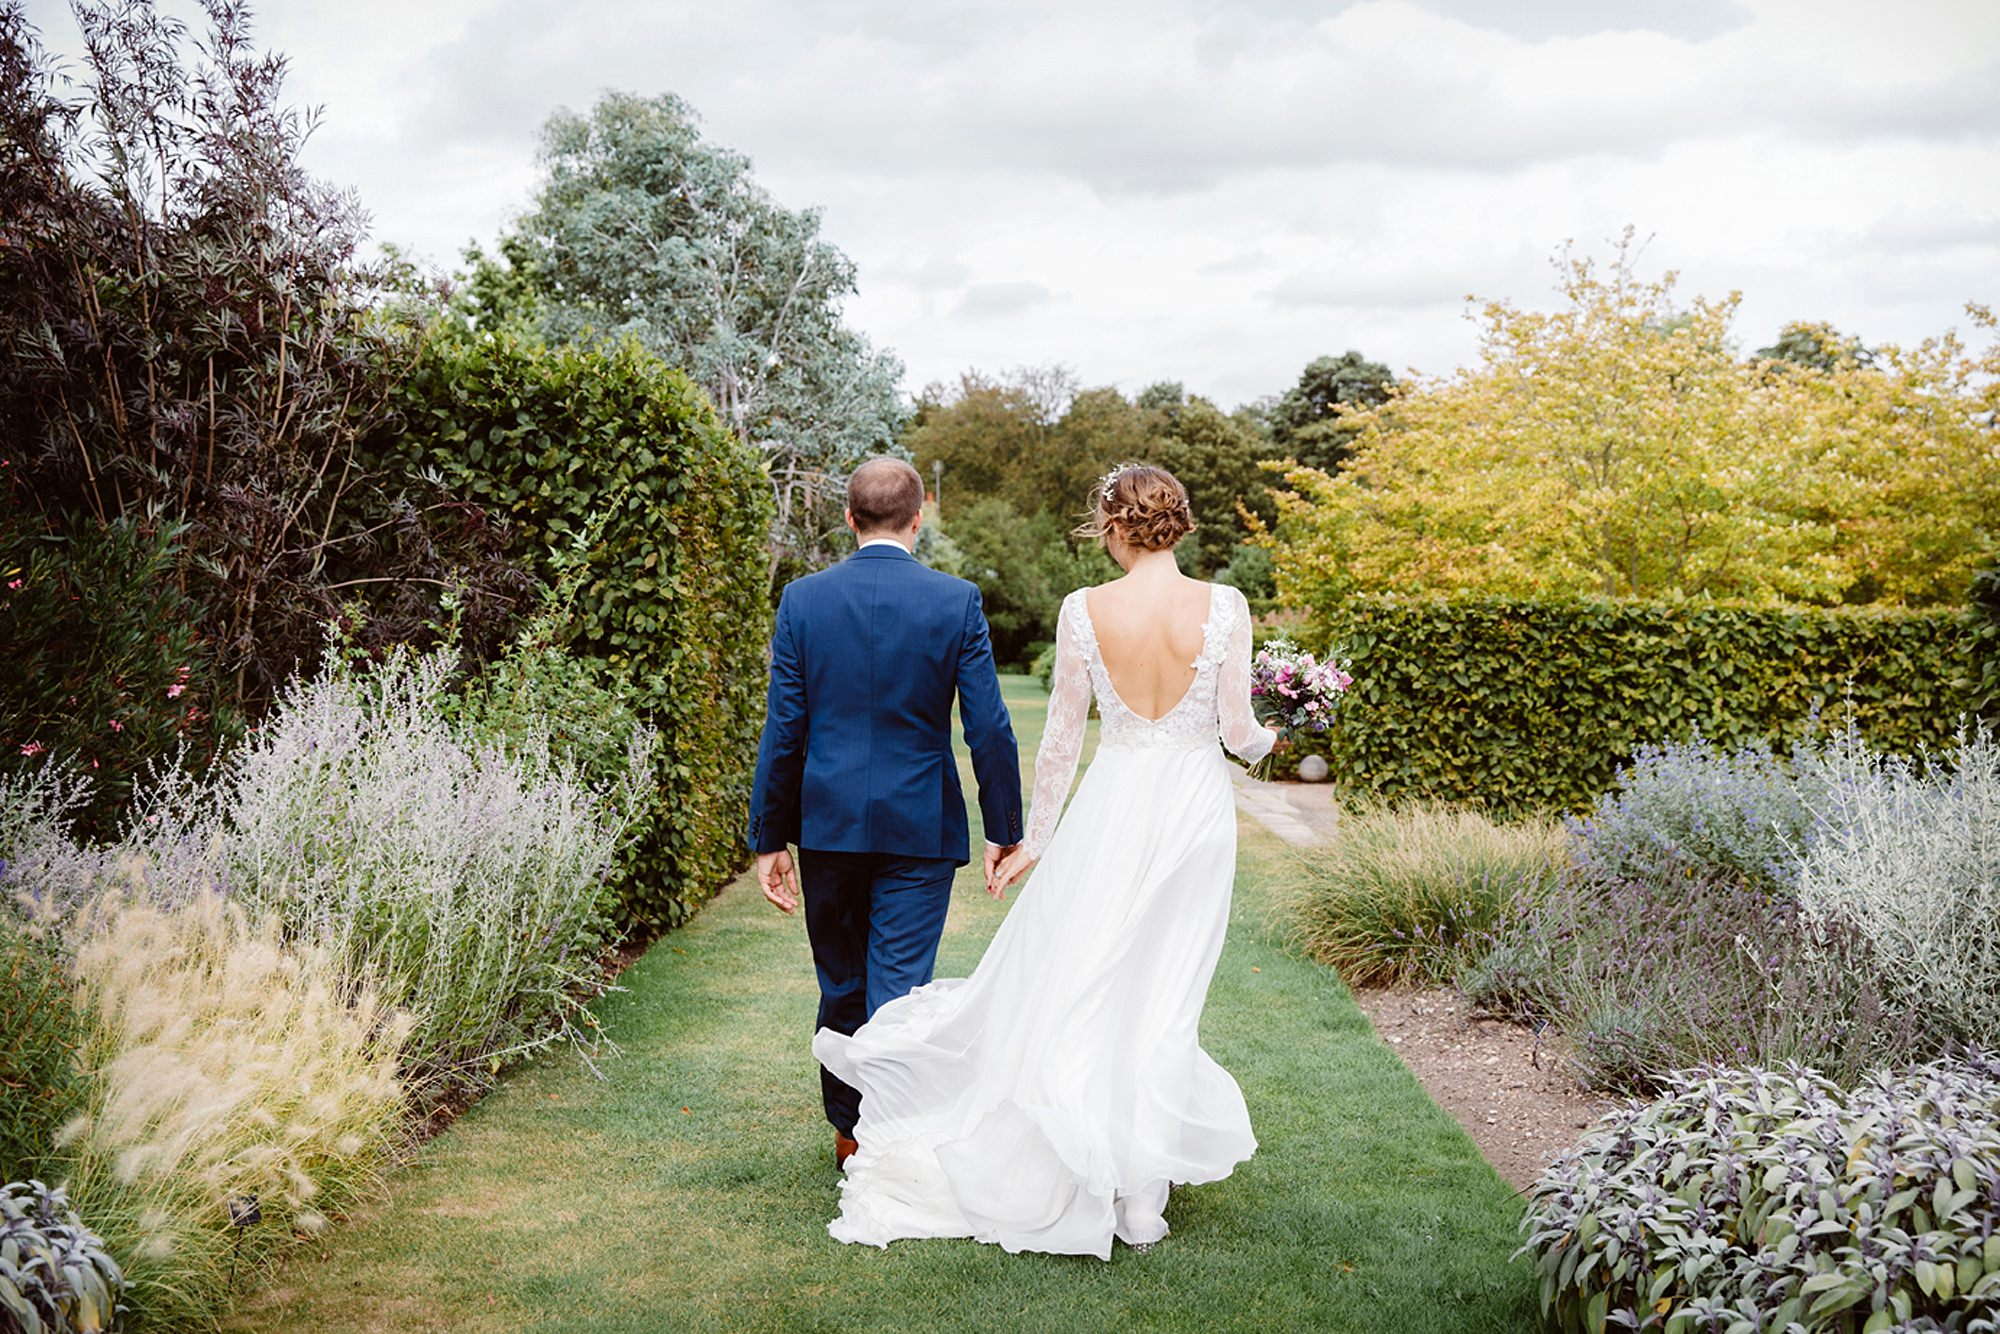 Marks Hall Estate wedding photography bride and groom walking together in marks hall gardens